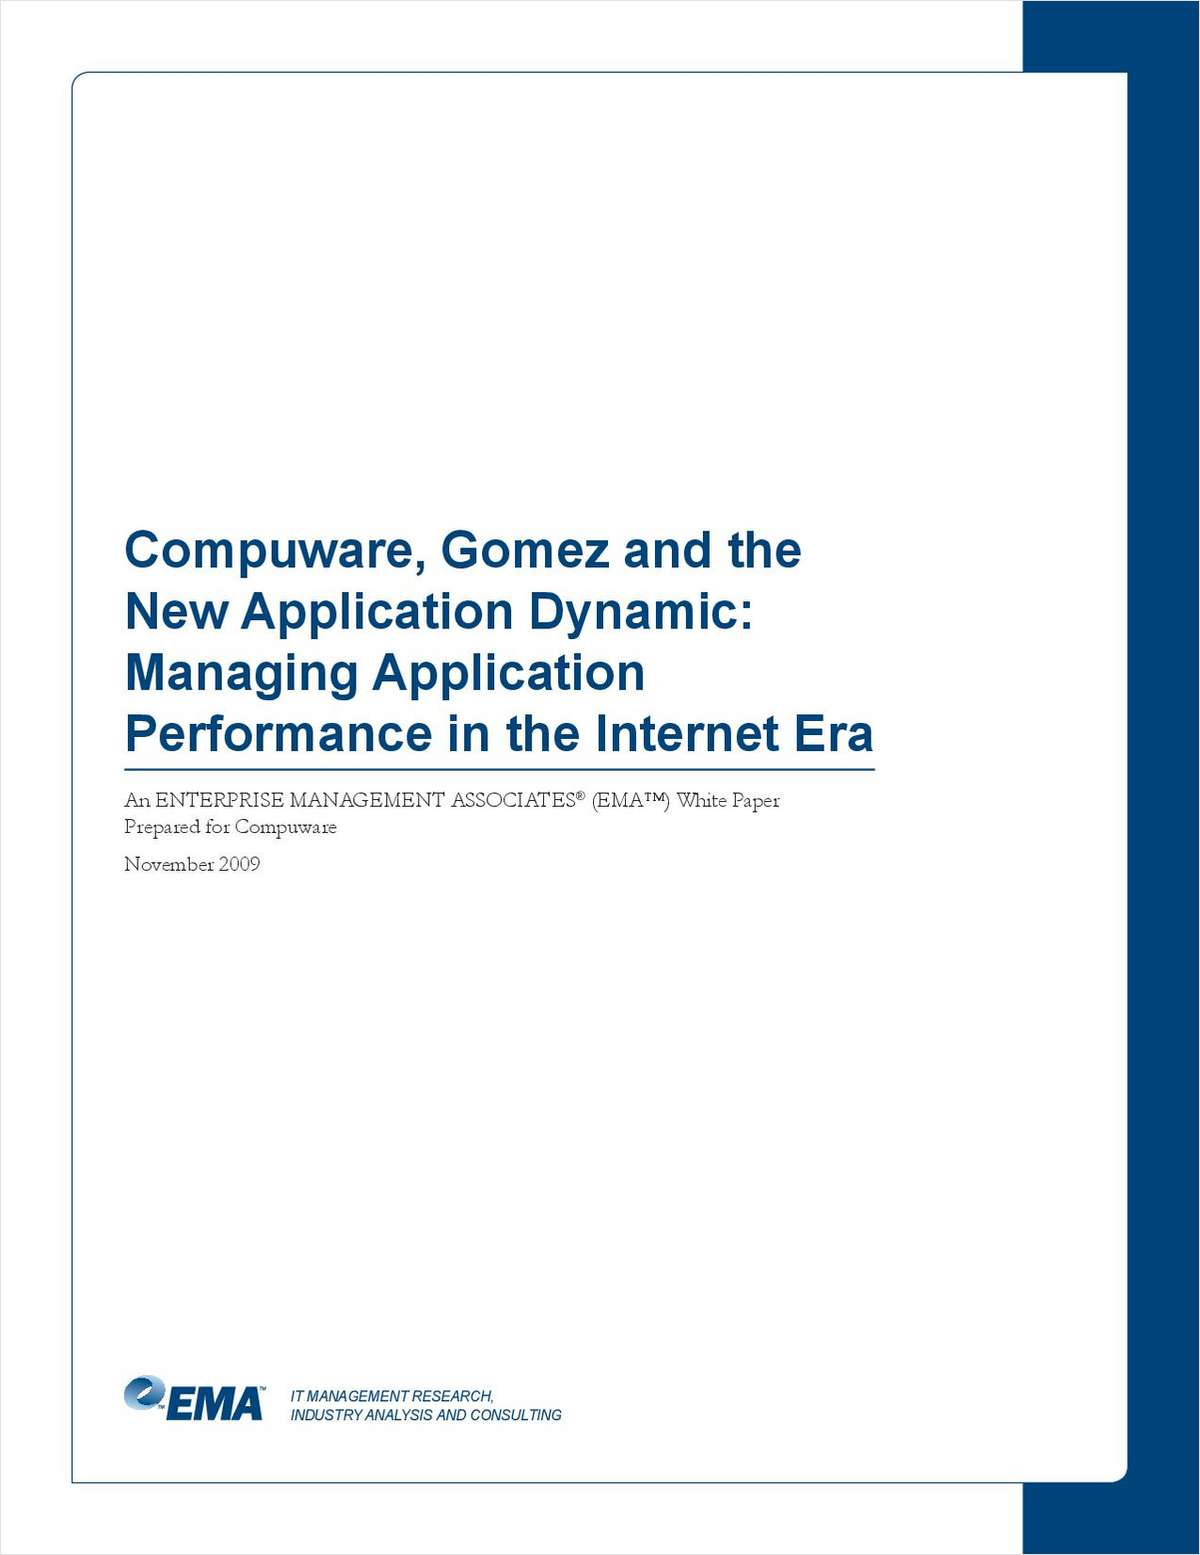 Managing Application Performance in the Internet Era